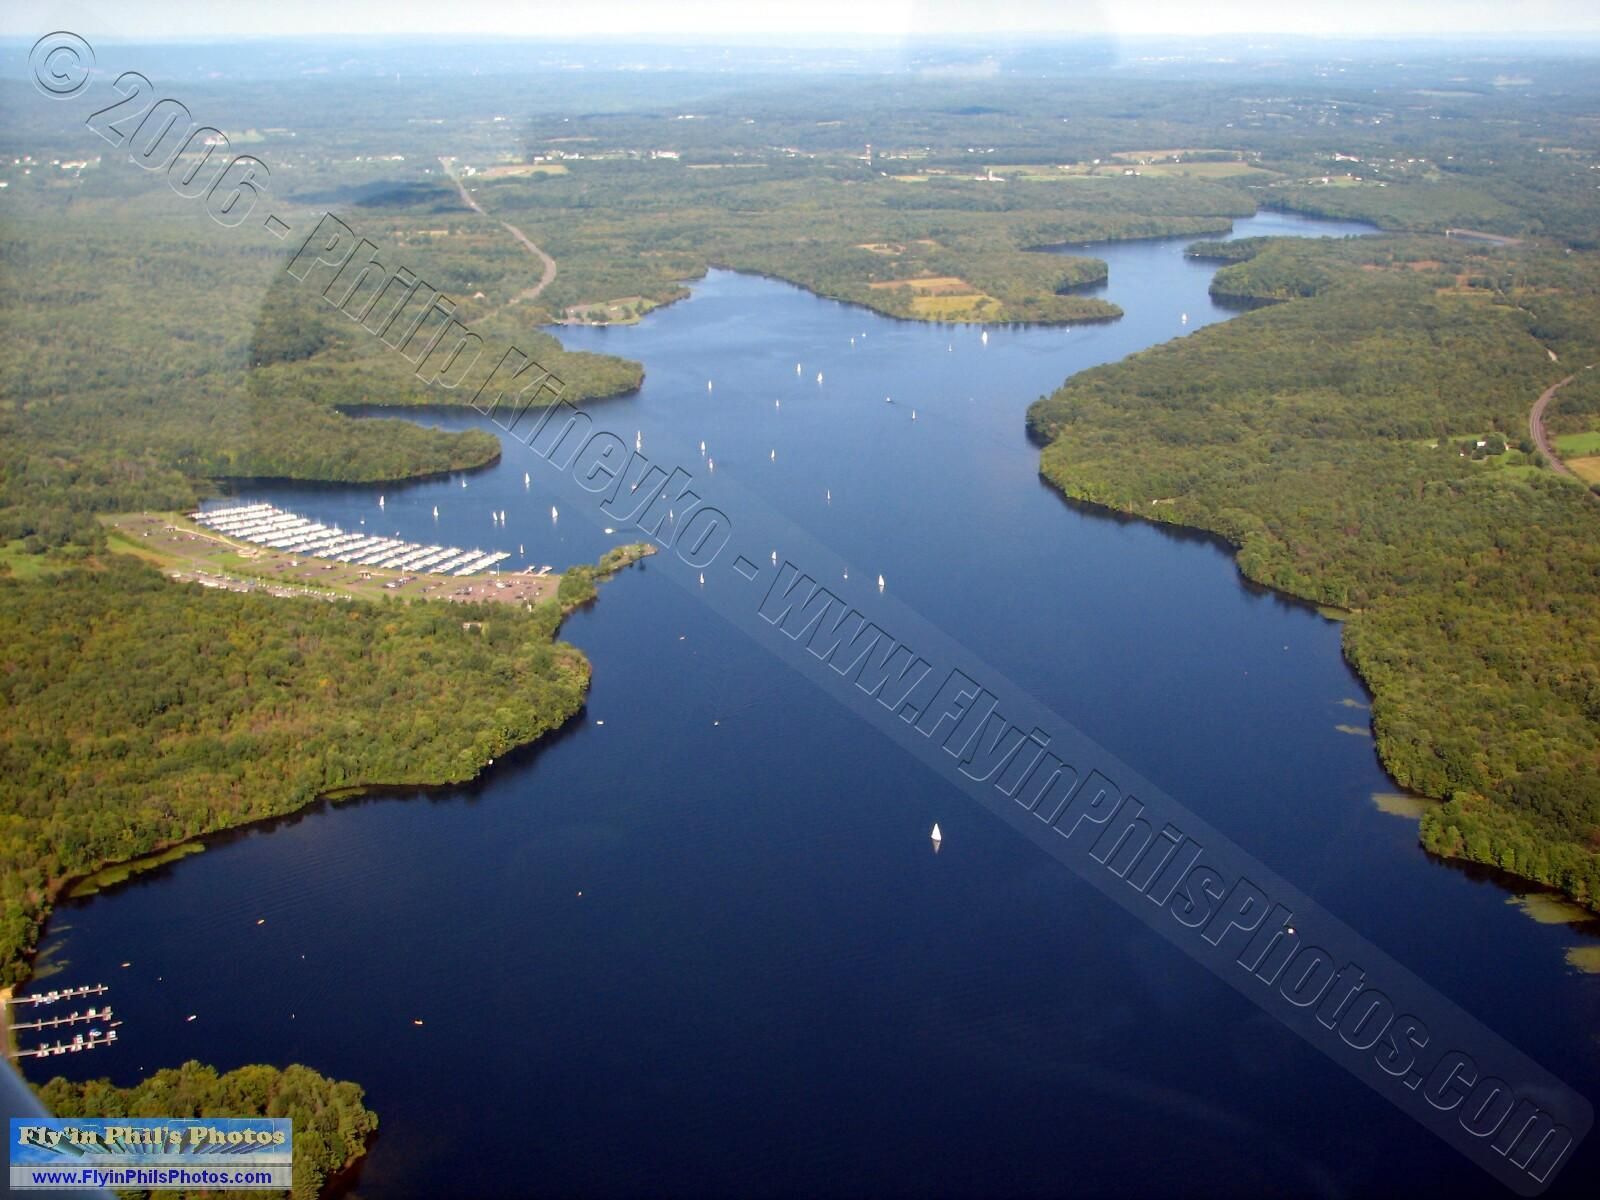 Fly'in Phil's Photos - Lakes, Reservoirs & Rivers Aerial